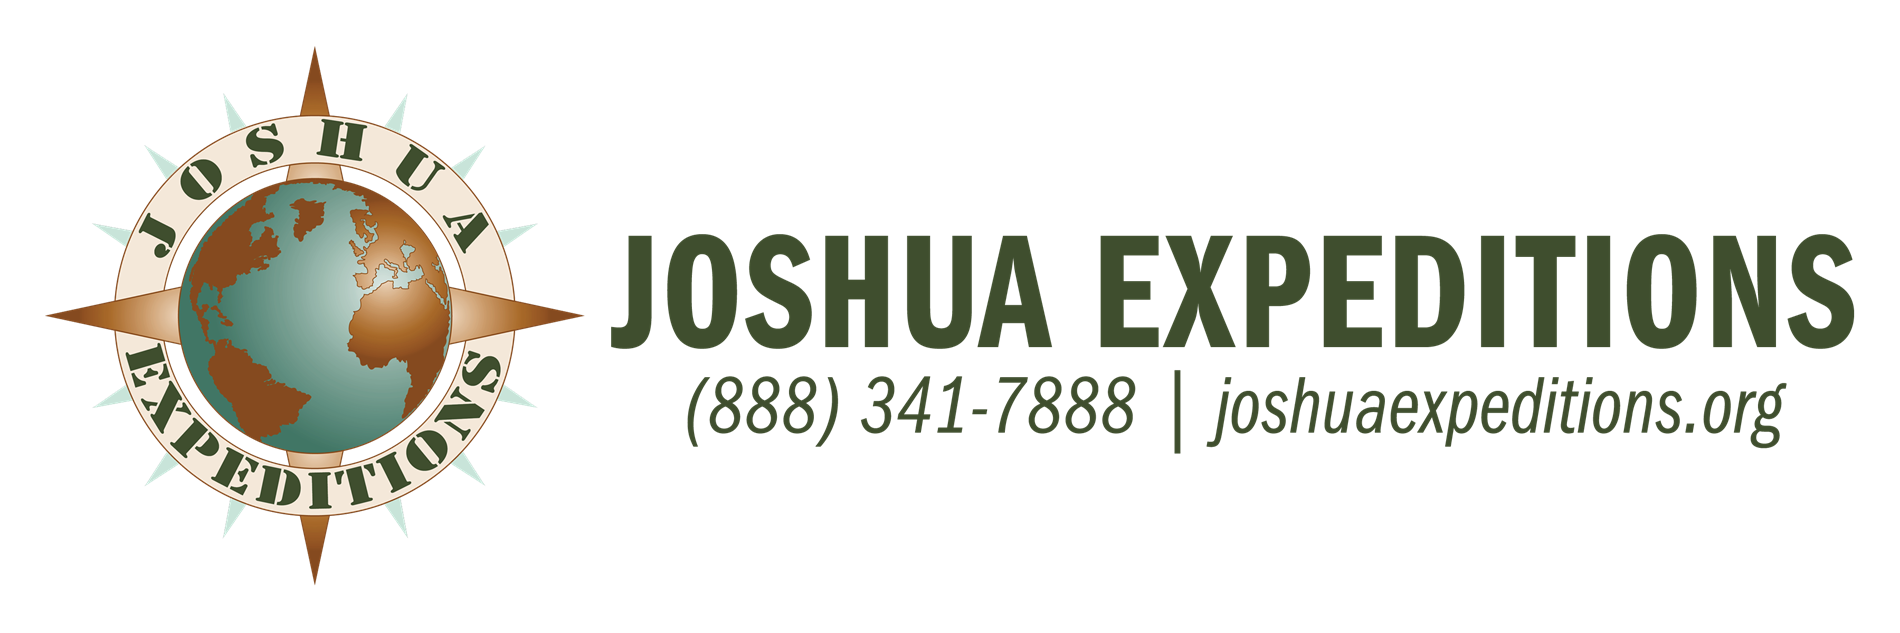 Joshua Expeditions